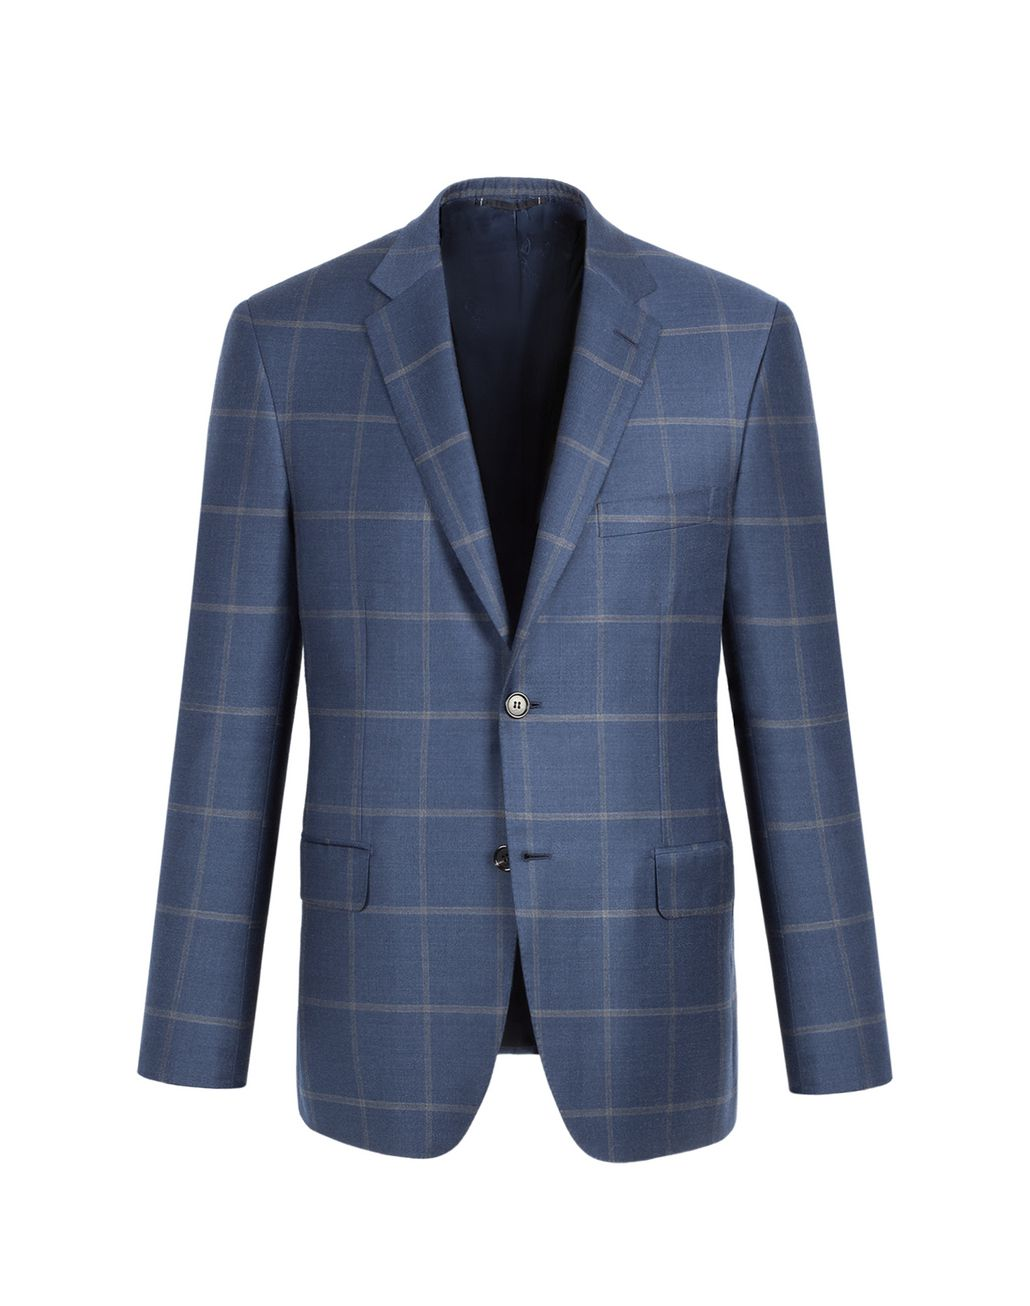 BRIONI Blue and Gray Overcheck Ravello Jacket Jackets Man f